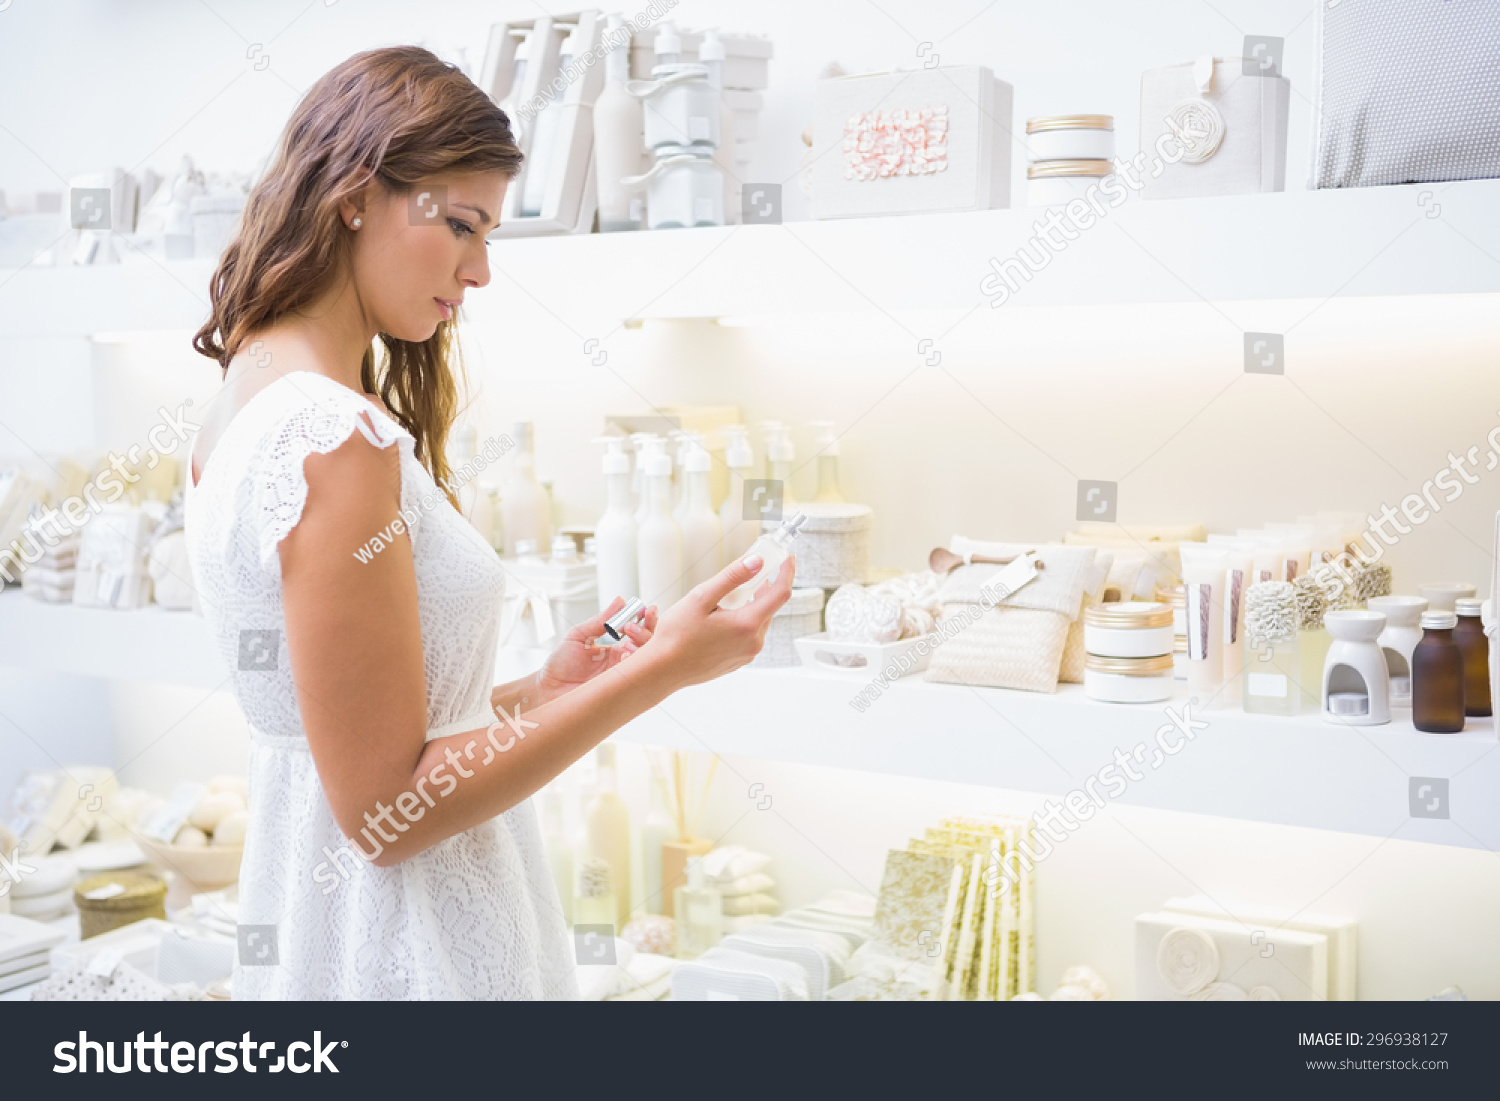 Concentrated woman reading ingredients beauty salon stock for Reading beauty salon